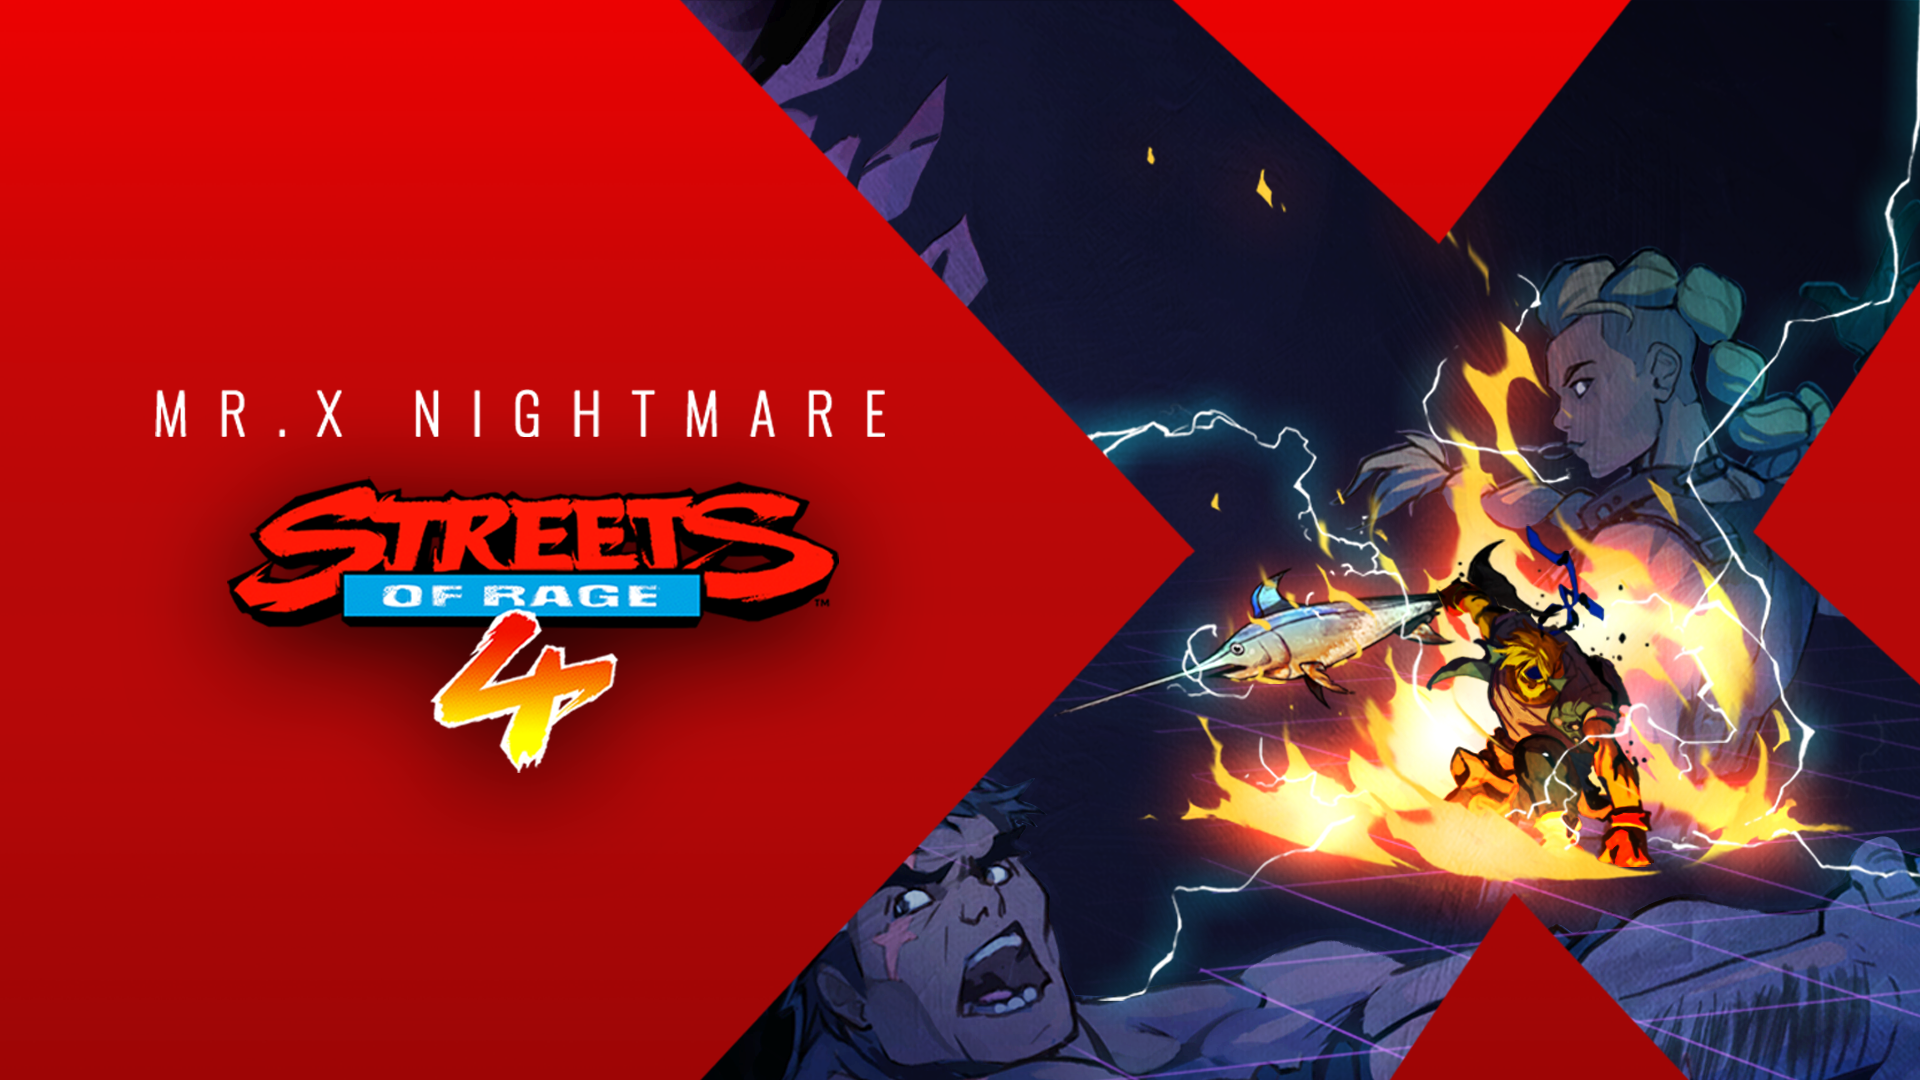 Max Thunder joins the fight in Streets of Rage 4 DLC Mr. X Nightmare